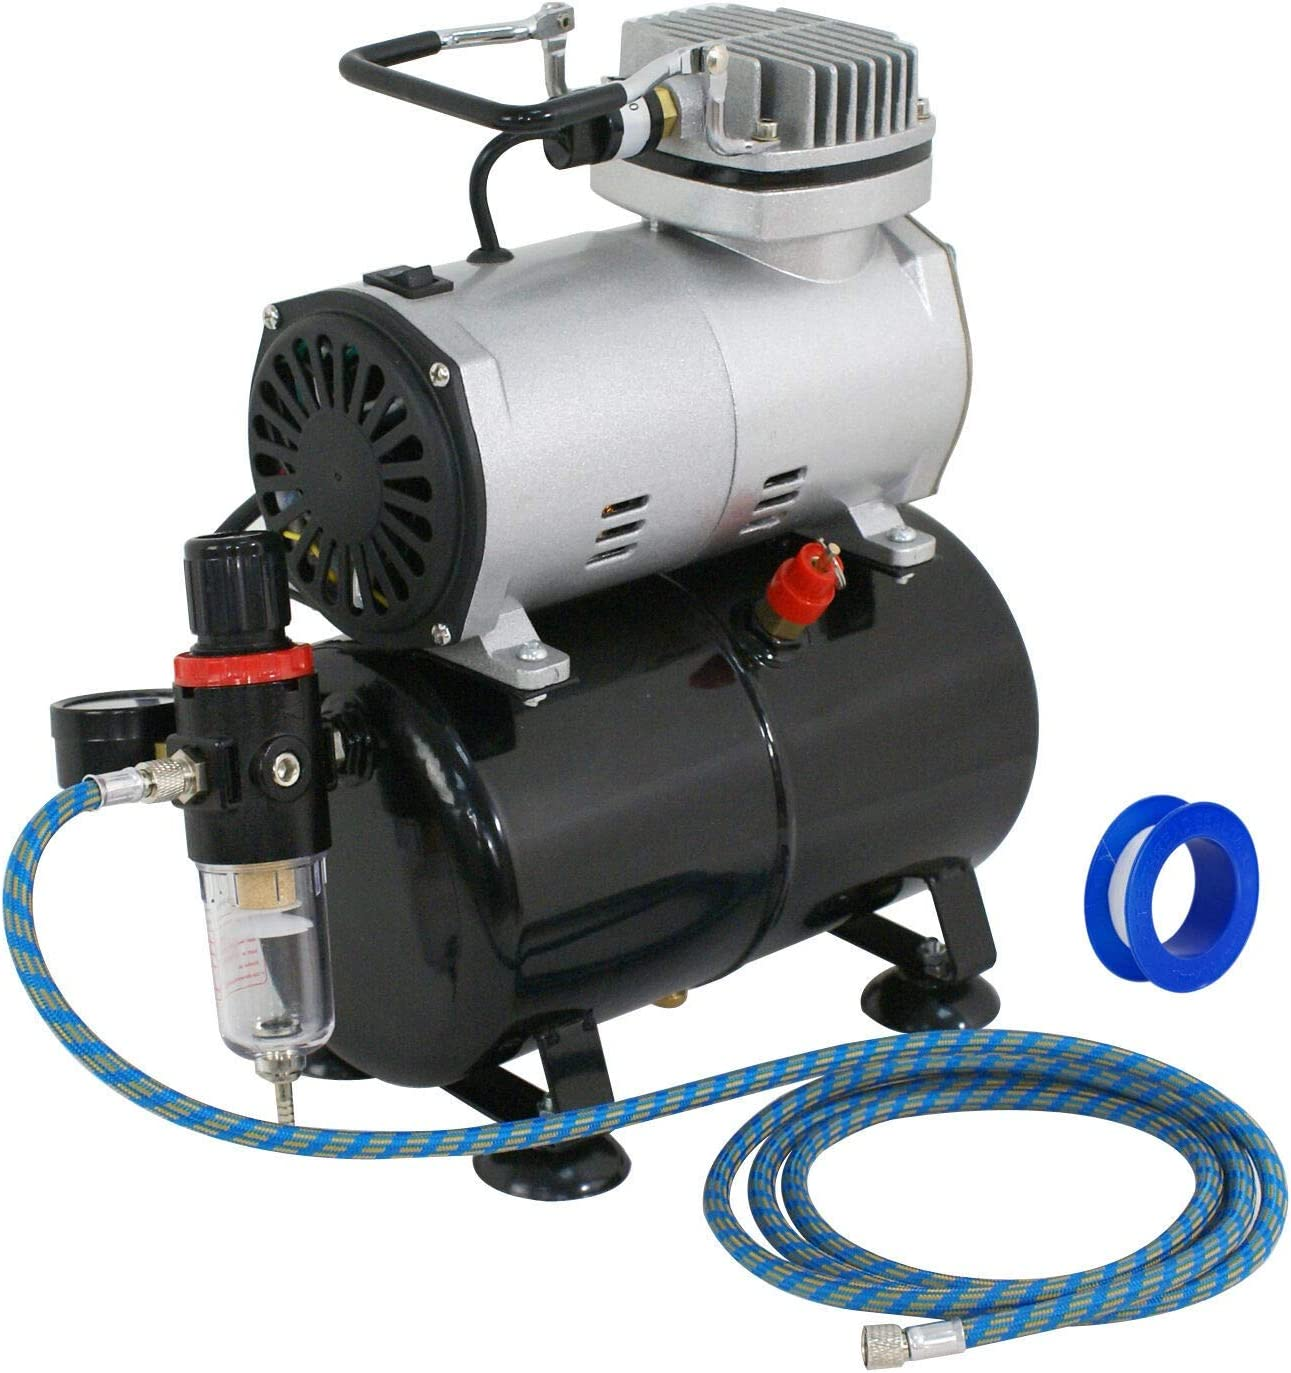 DFGH Compressor Kit Thermally Protected 1 5 Very popular Tan Elegant 3L HP with Air